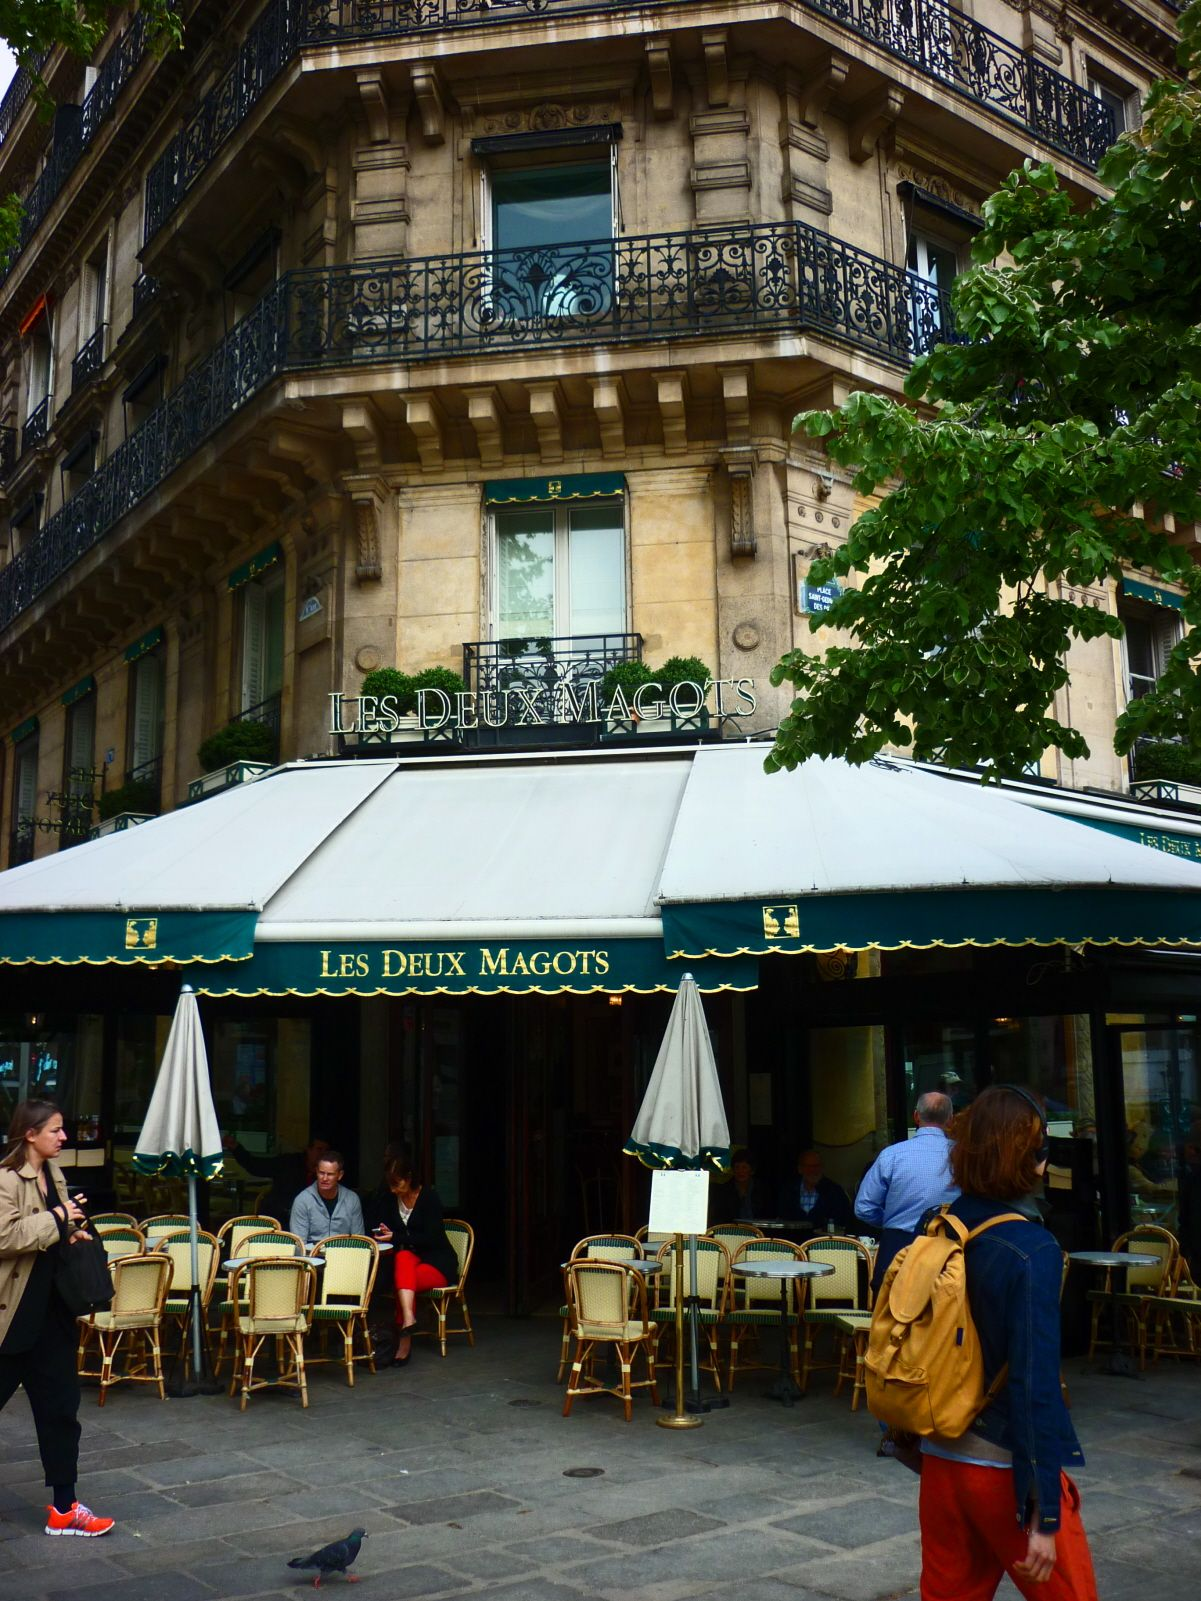 Les Deux Magots Famous French Restaurant In Paris